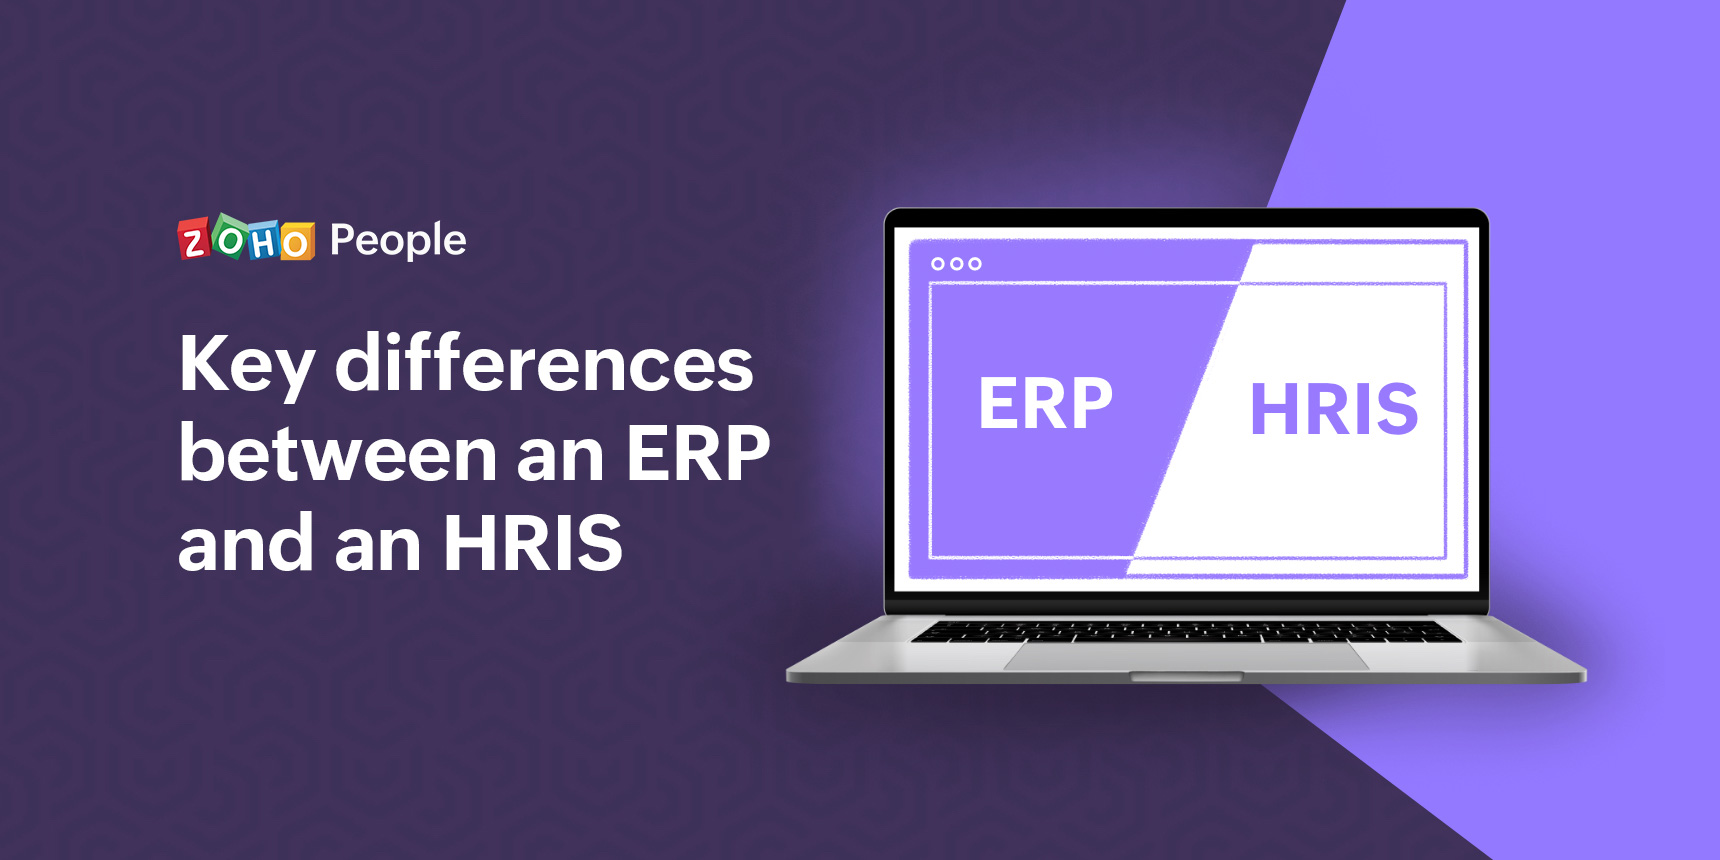 Differences between an ERP and an HRIS